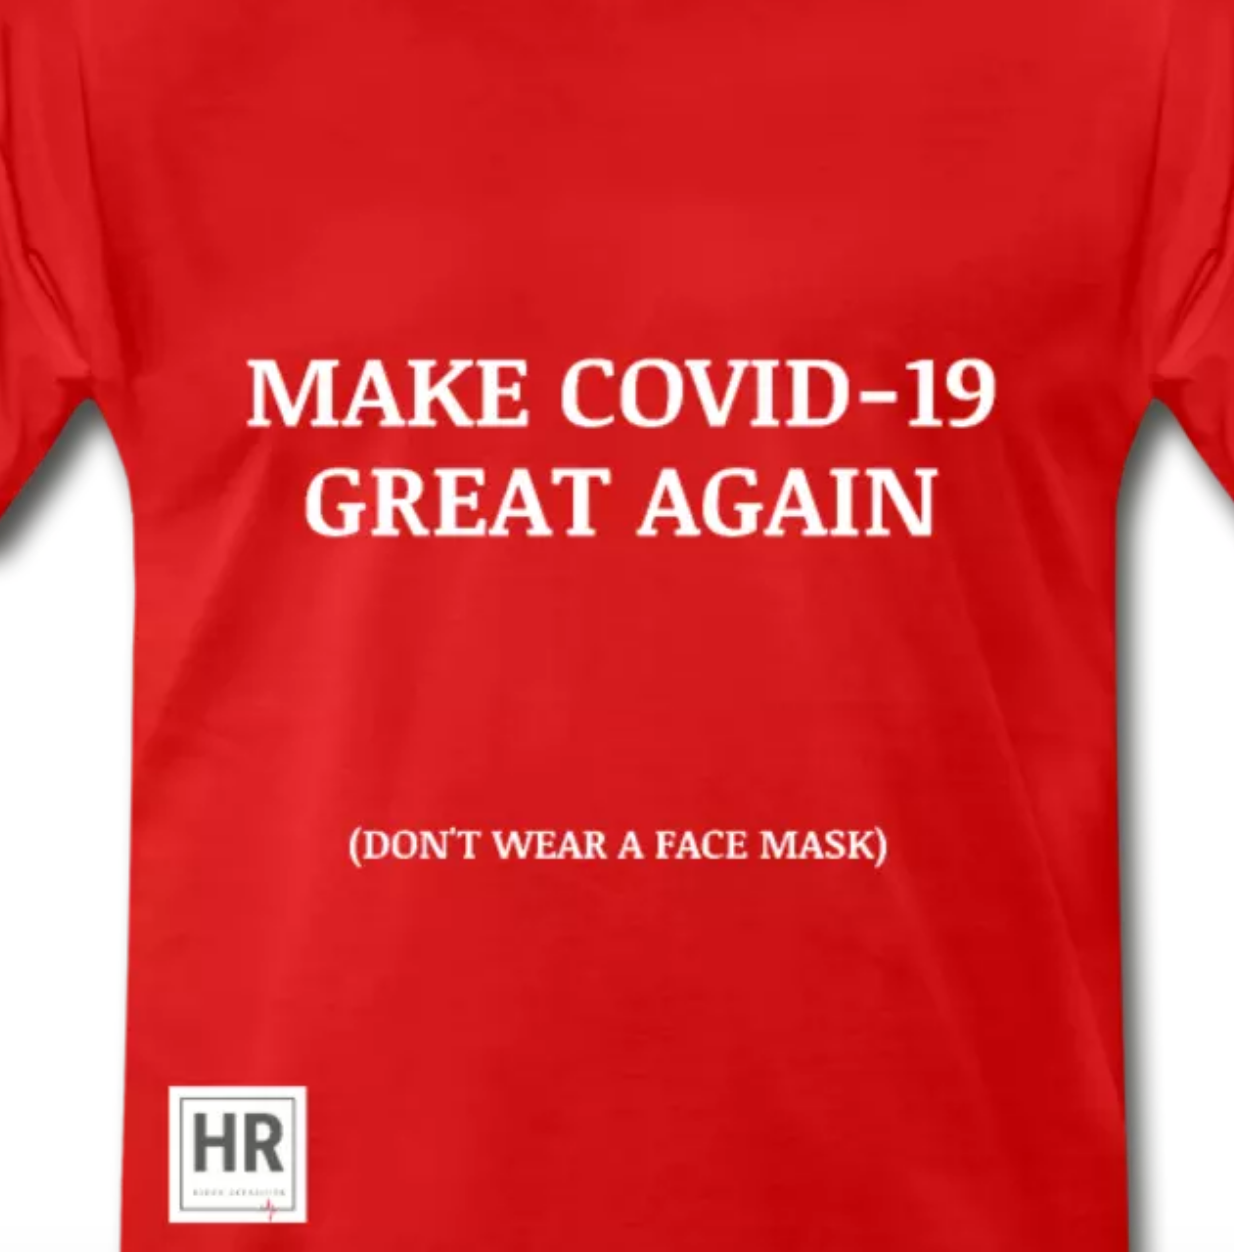 Make Covid-19 Great Again